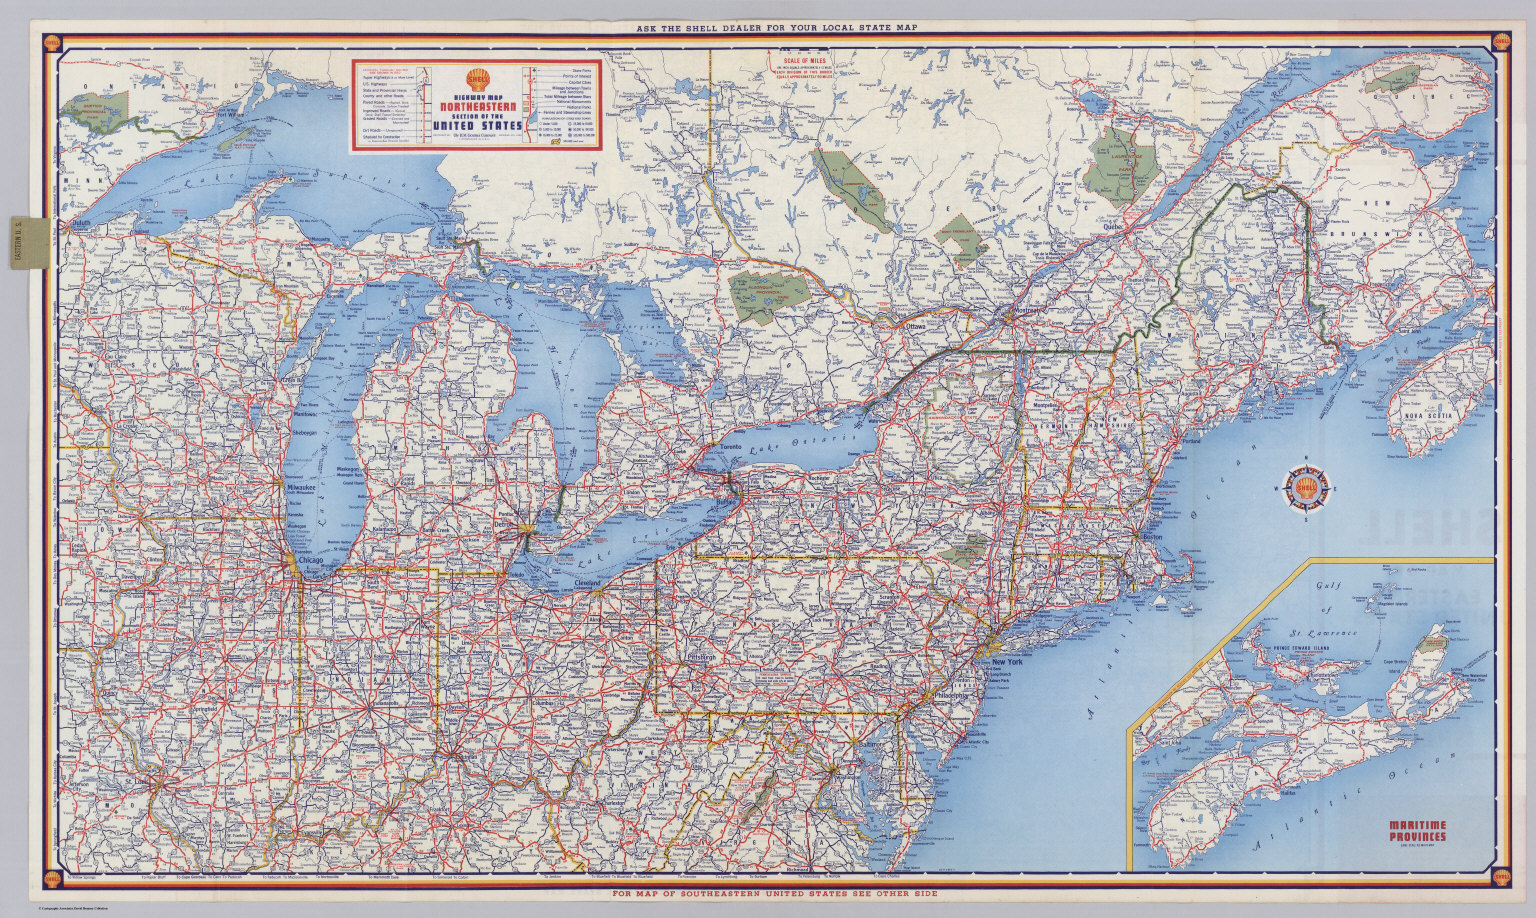 Shell Highway Map Northeastern Section Of The United States - Map of highways in us